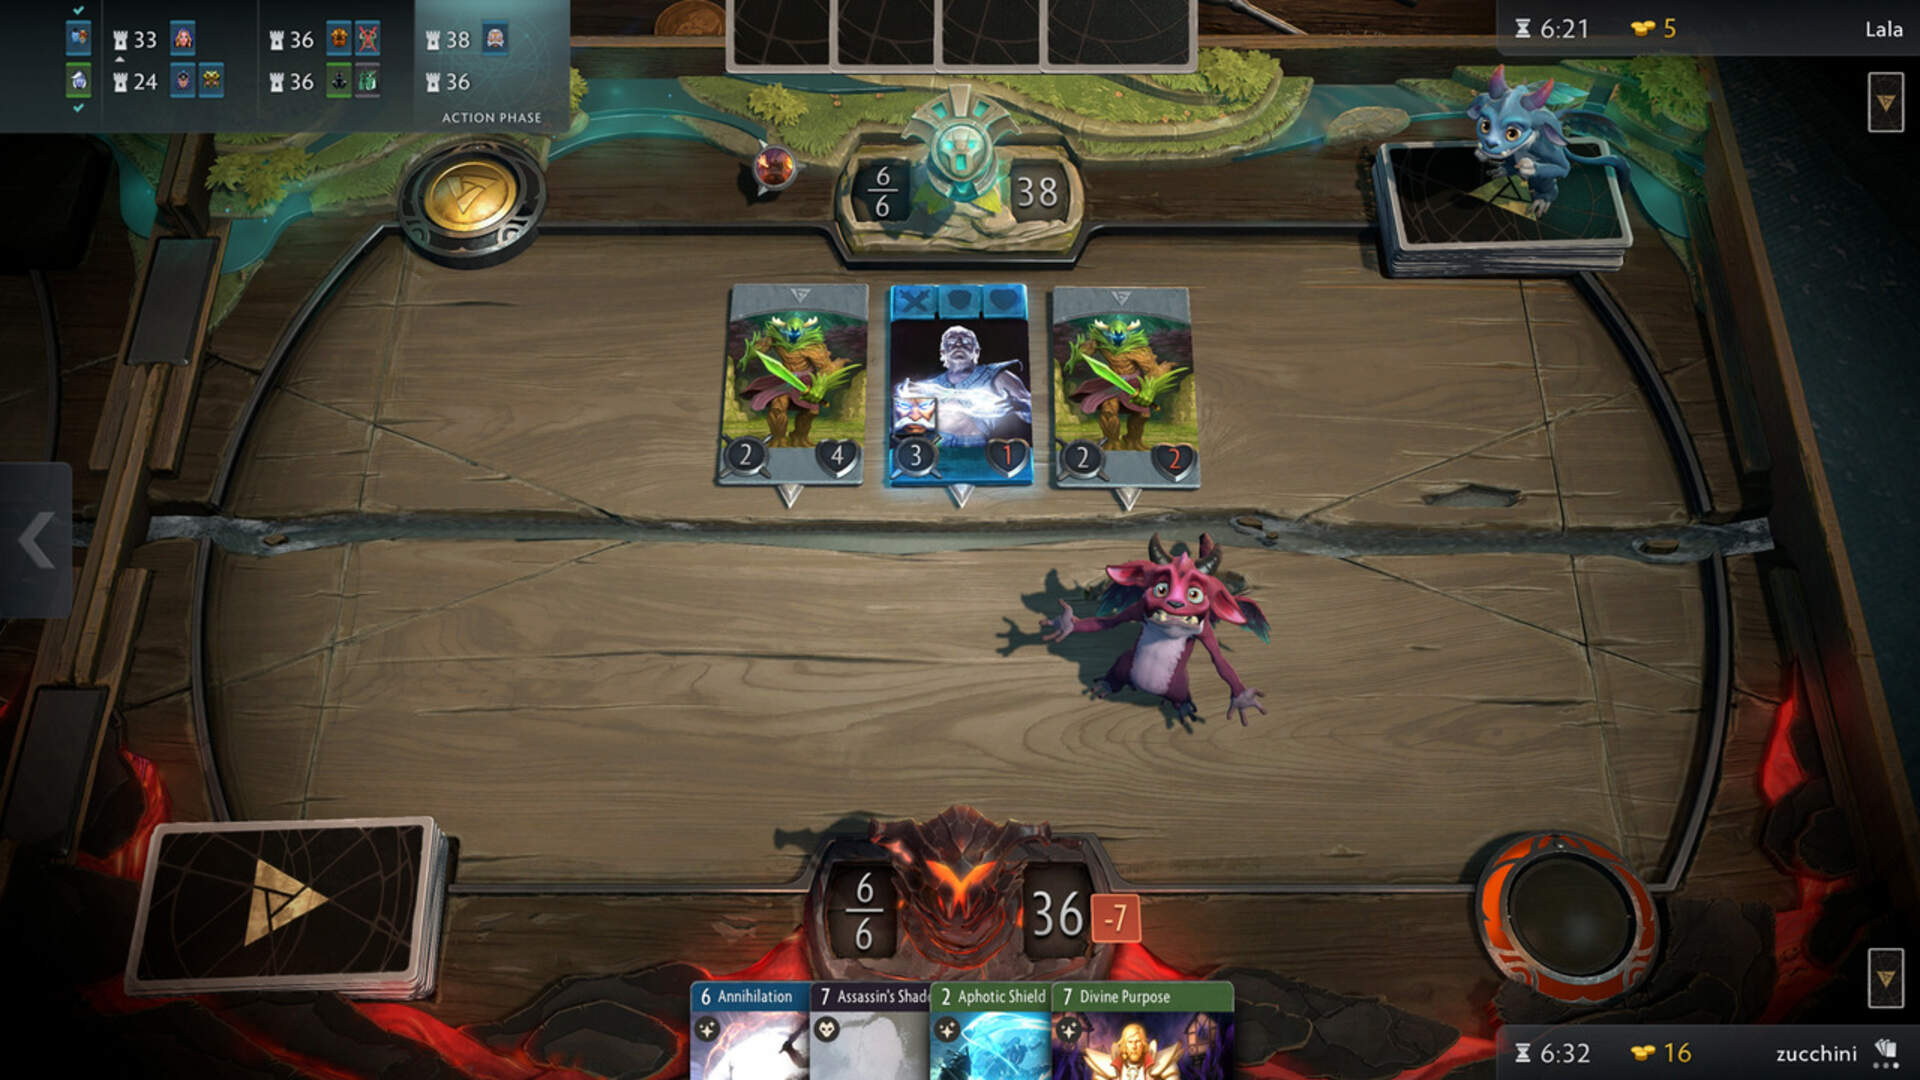 Former Artifact Designer Says Expansions Were in the Works Prior to His Departure